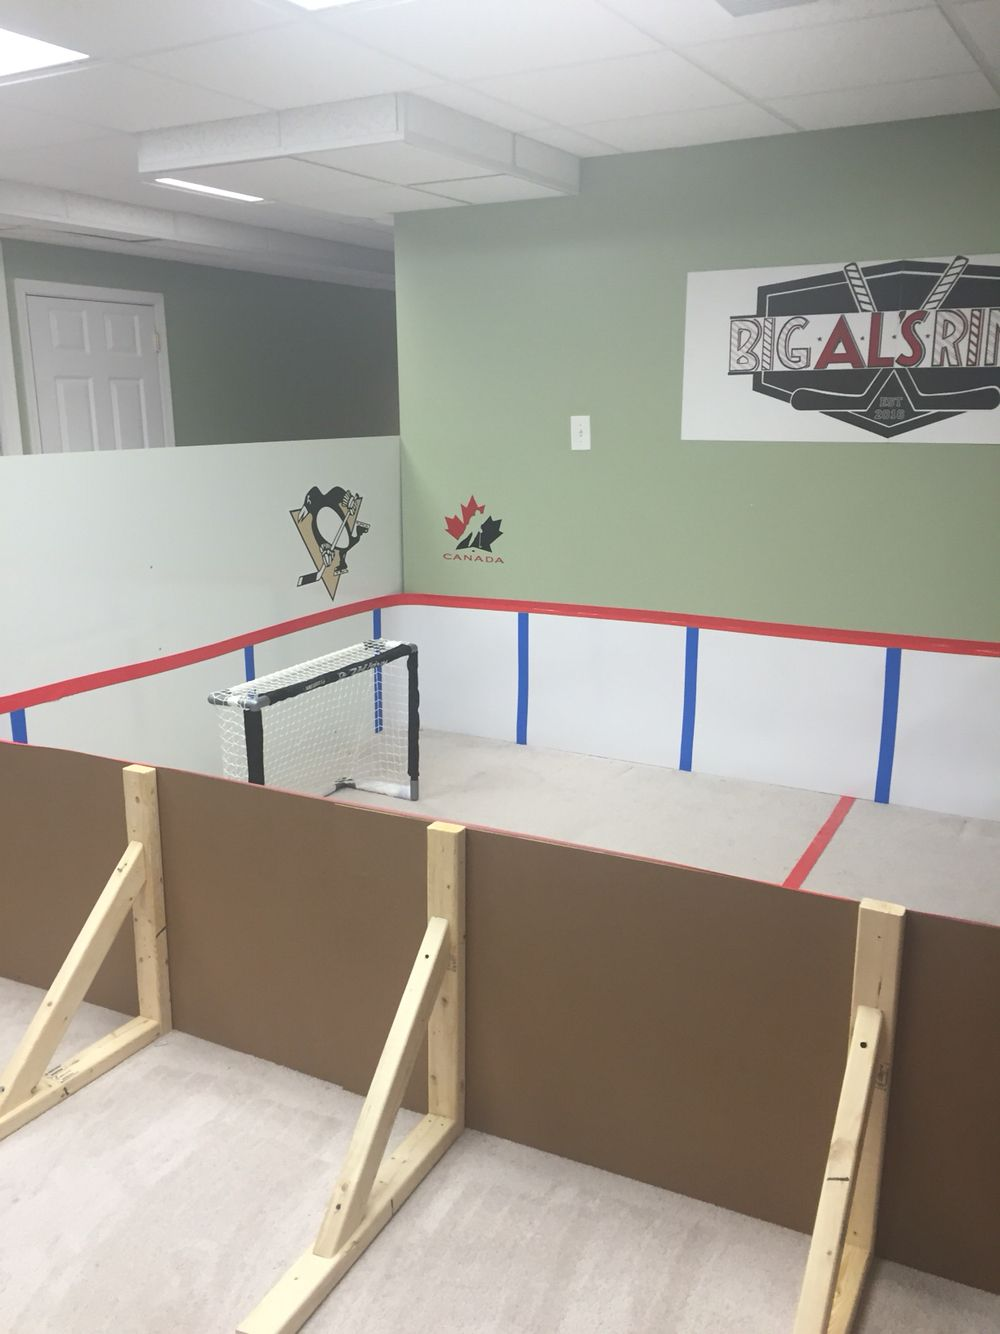 a synthetic ice rink you can have in your basement ummm